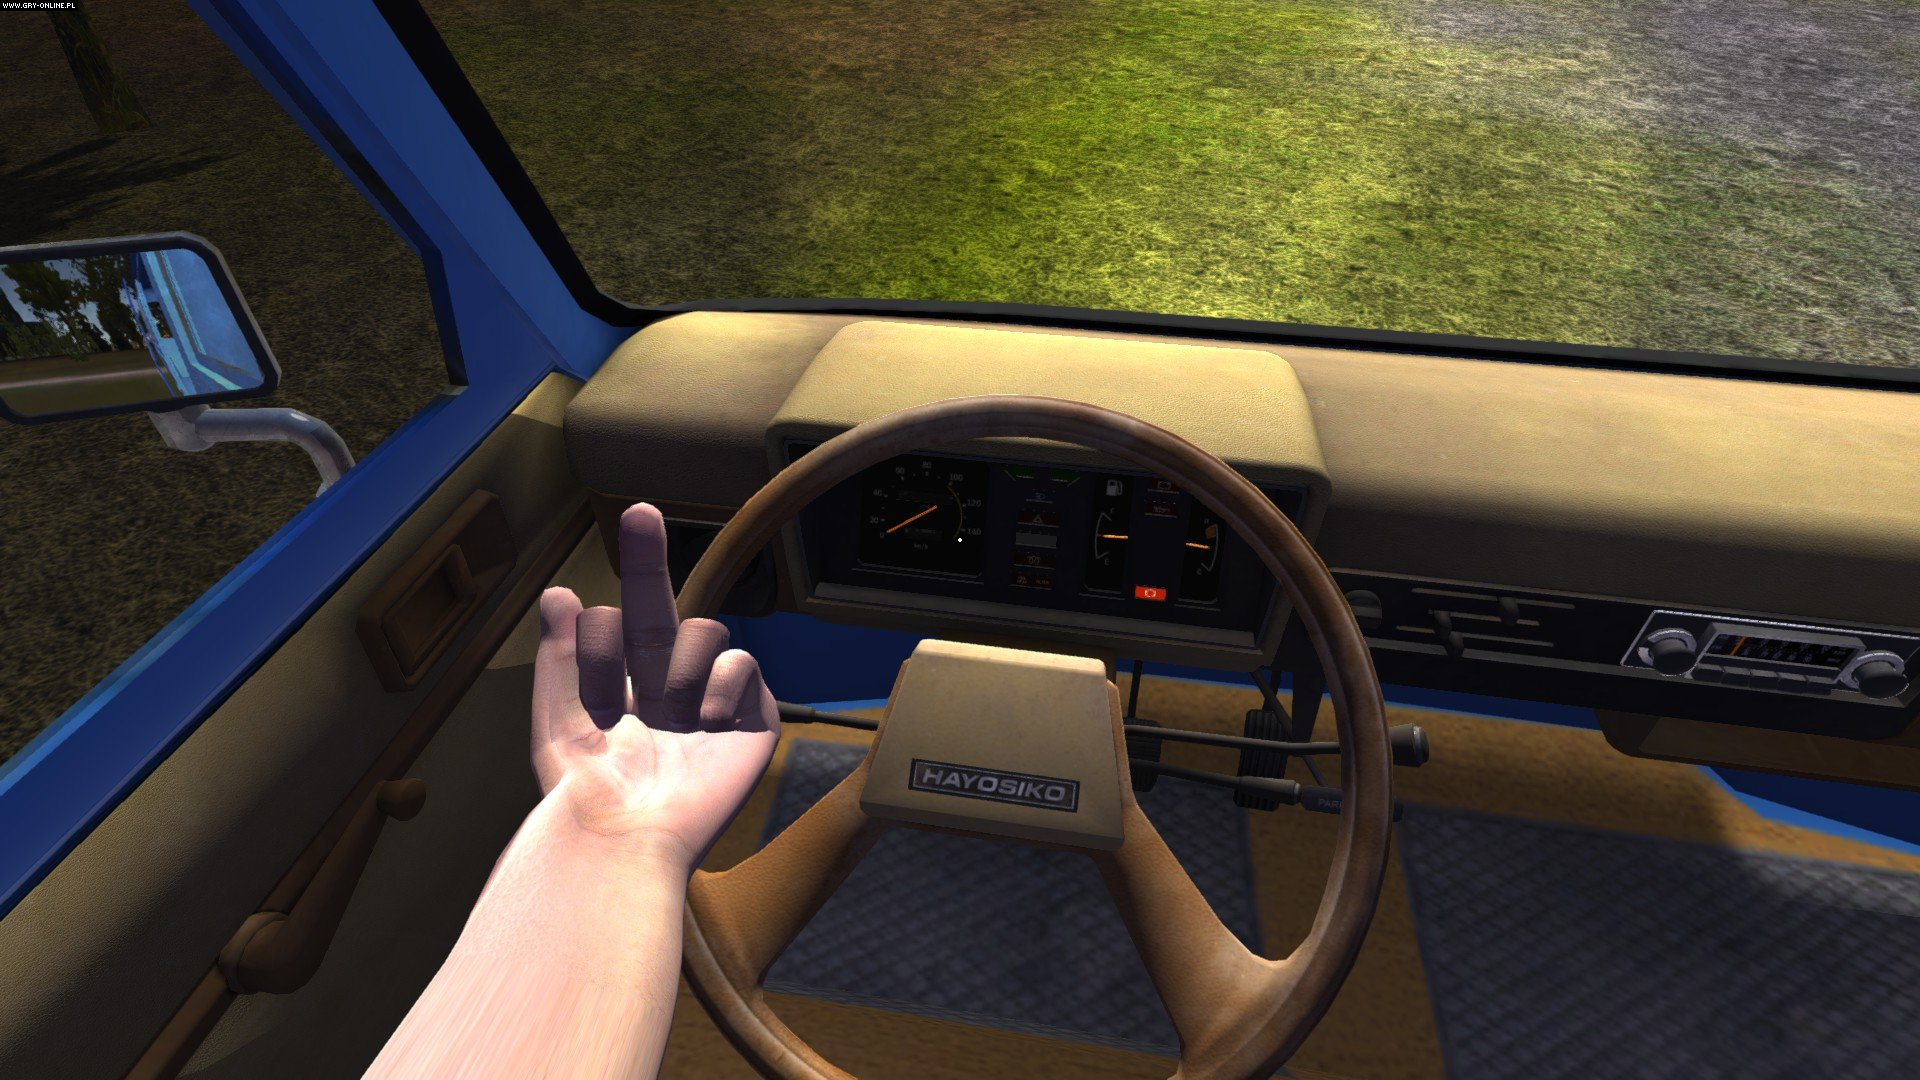 My Summer Car Download For Free Pc Wwwx Gamexcom